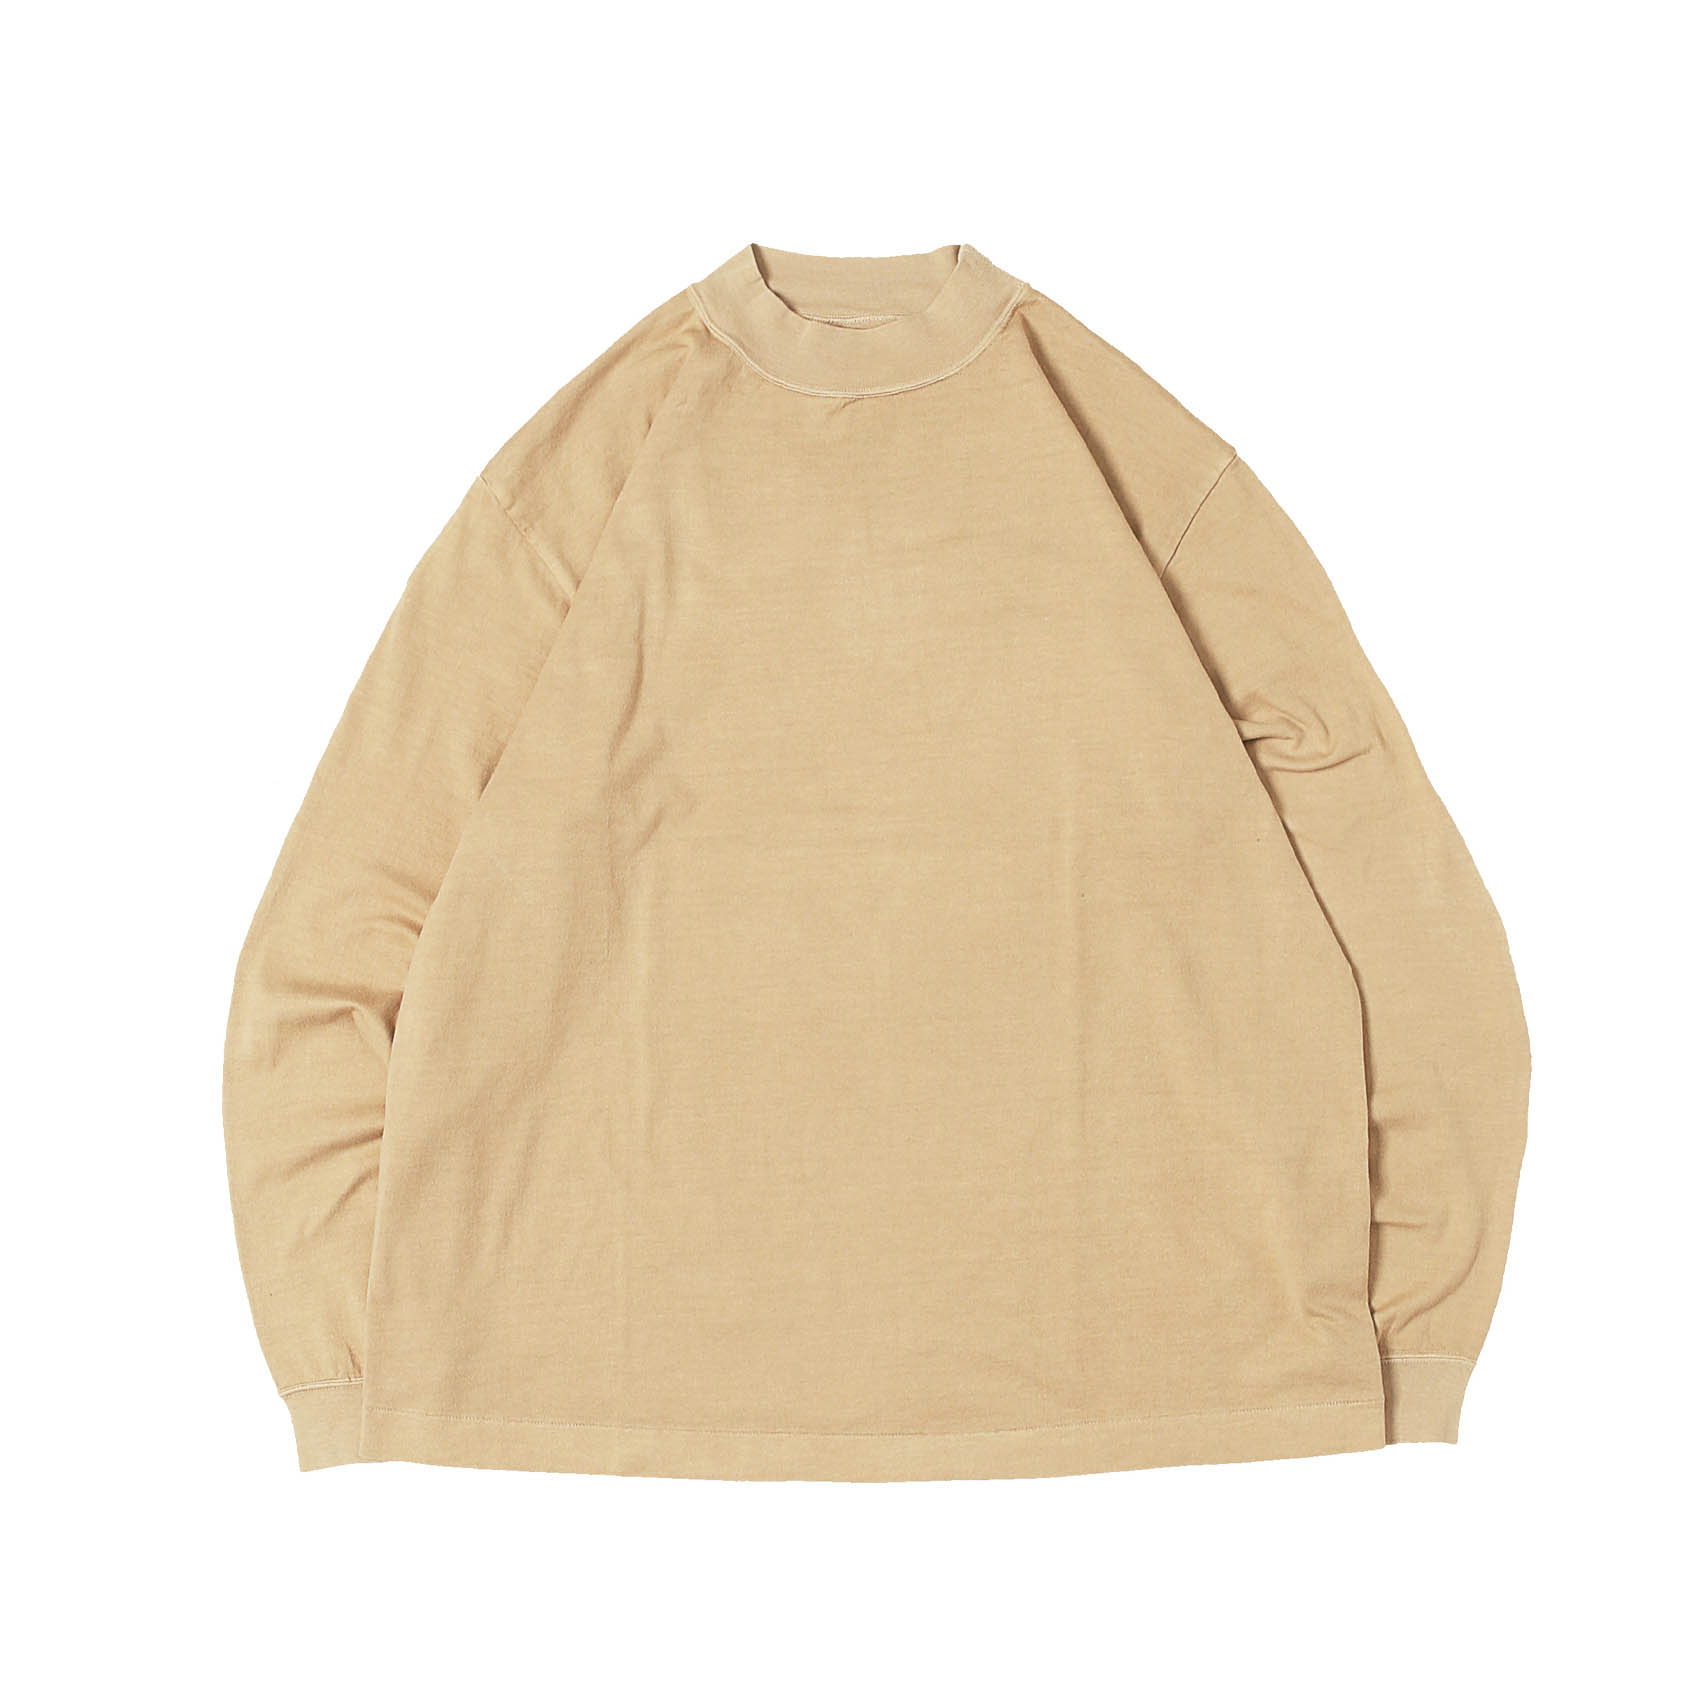 L/S MOCK NECK TEE - TAN